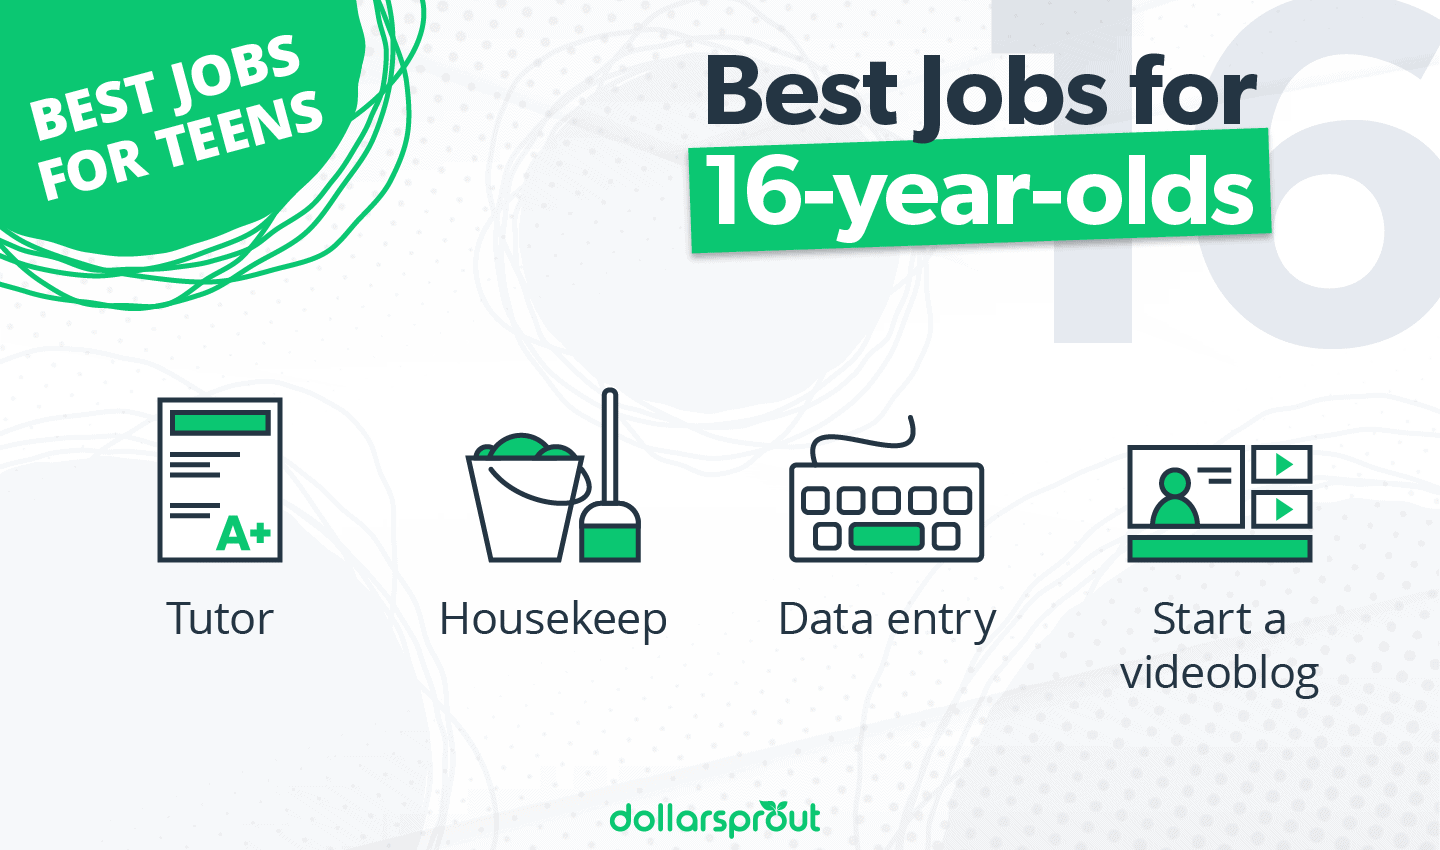 Best Jobs for 16-year-olds